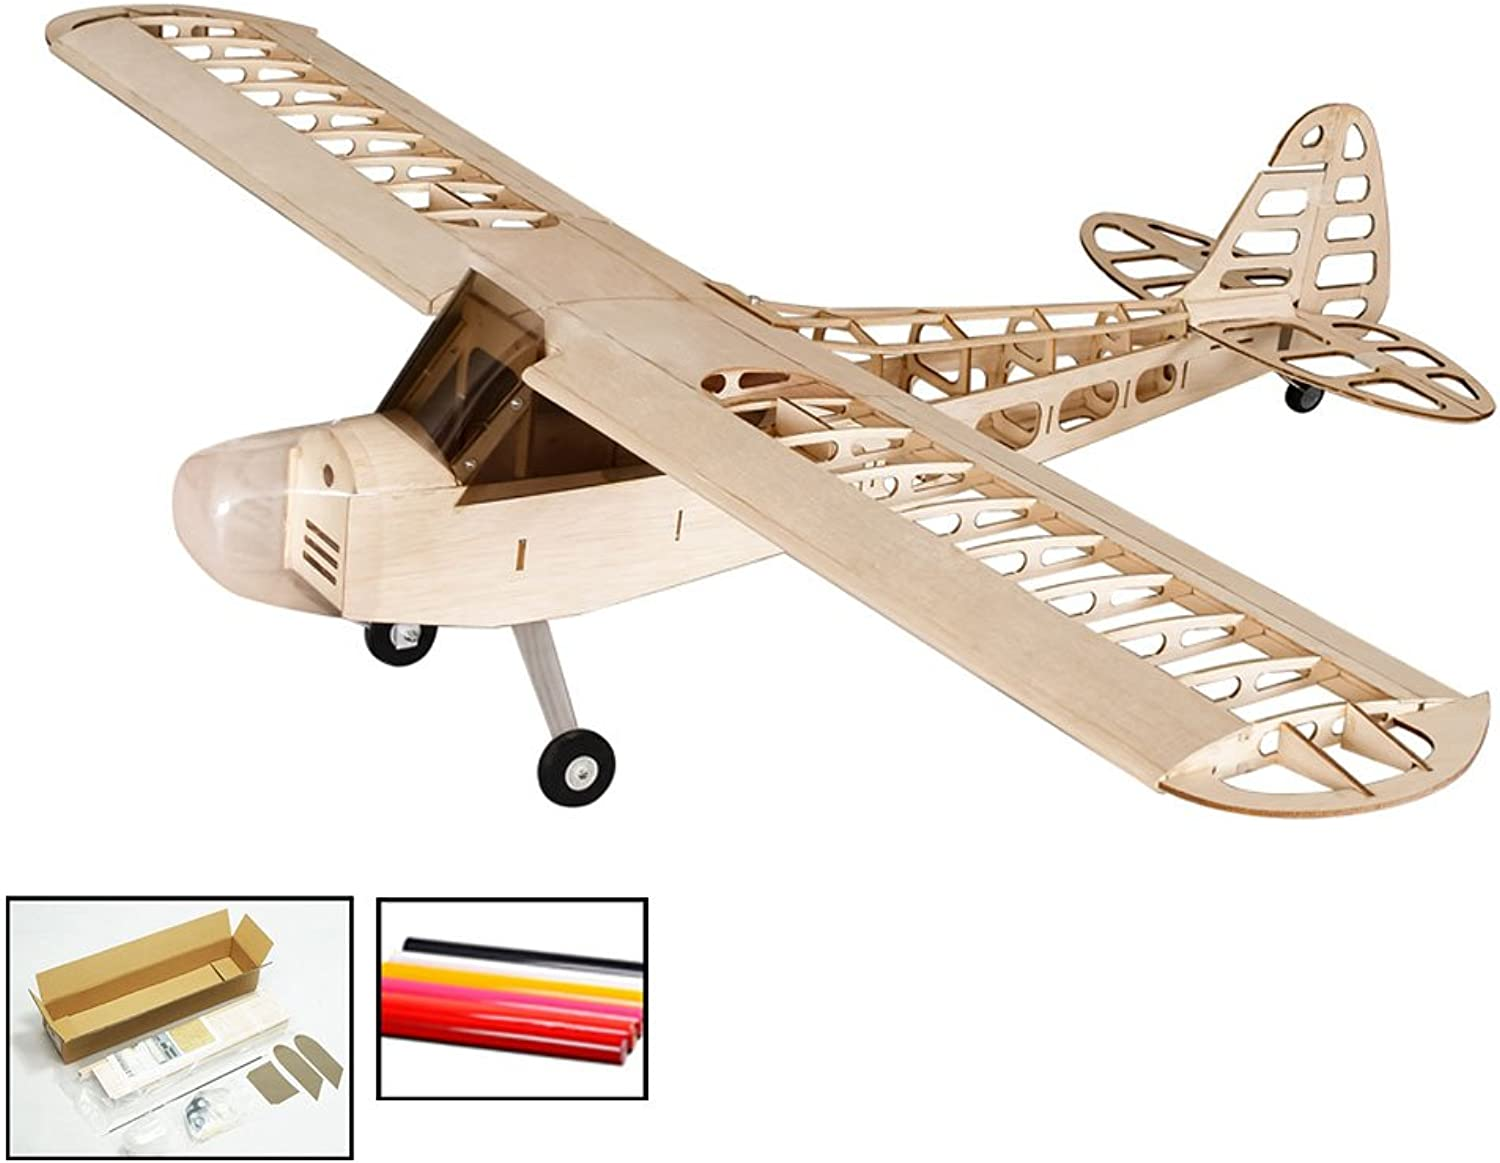 DW Hobby Balsa Wood Electric Airplane 1.2M J3 LaserCutting Remote Control Aeroplane Kits to Build RC Unassembled Model Aircraft for Fun (S0801B)